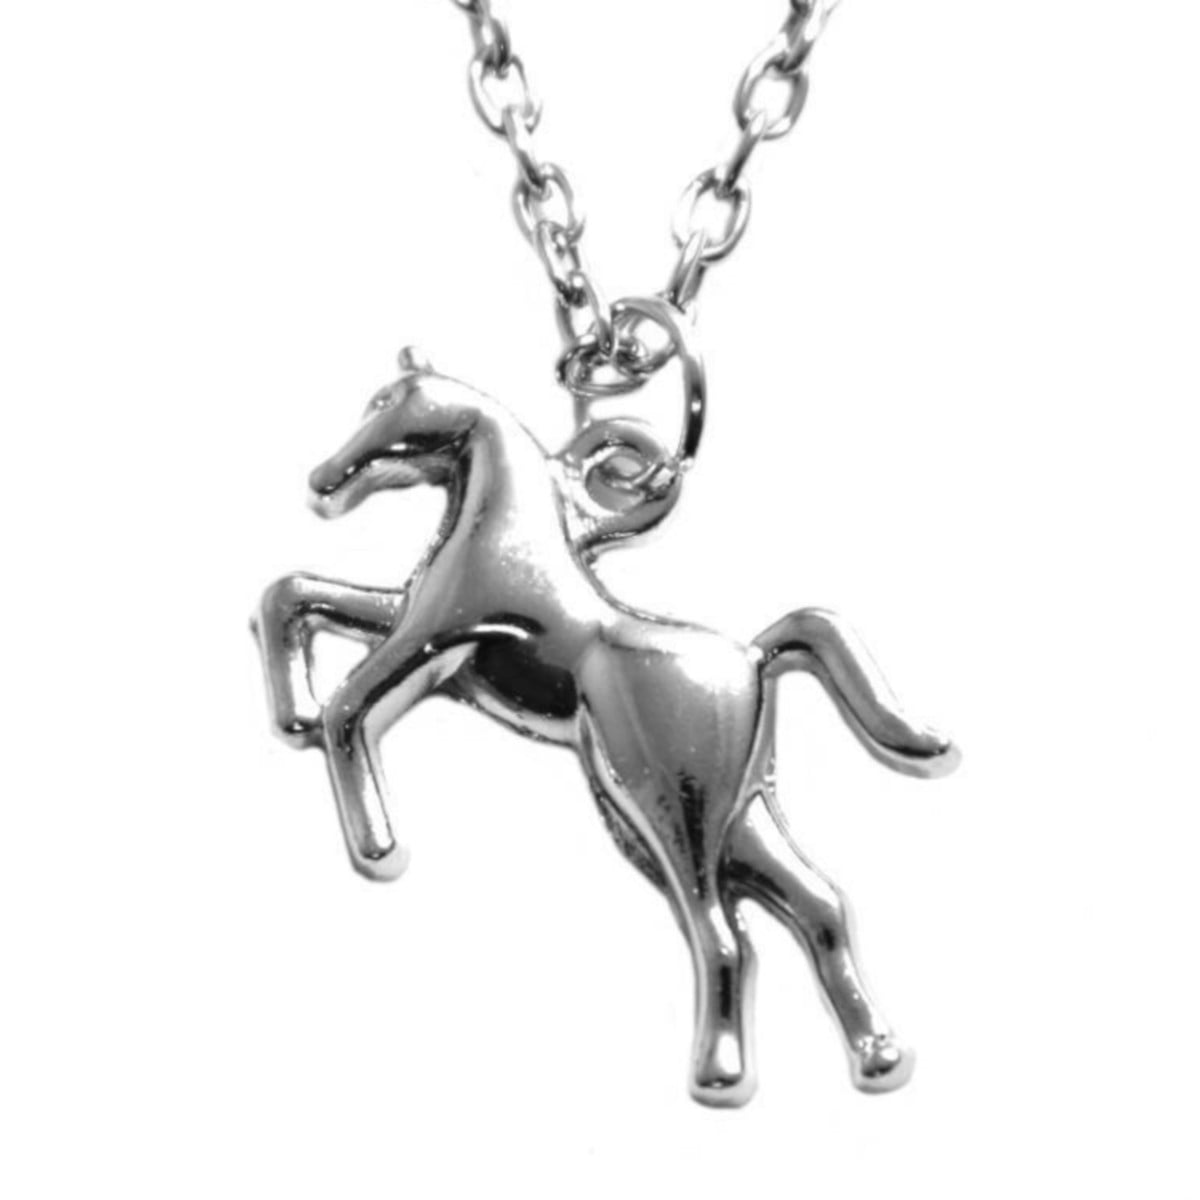 Necklace with prancing horse pendant in silver plate